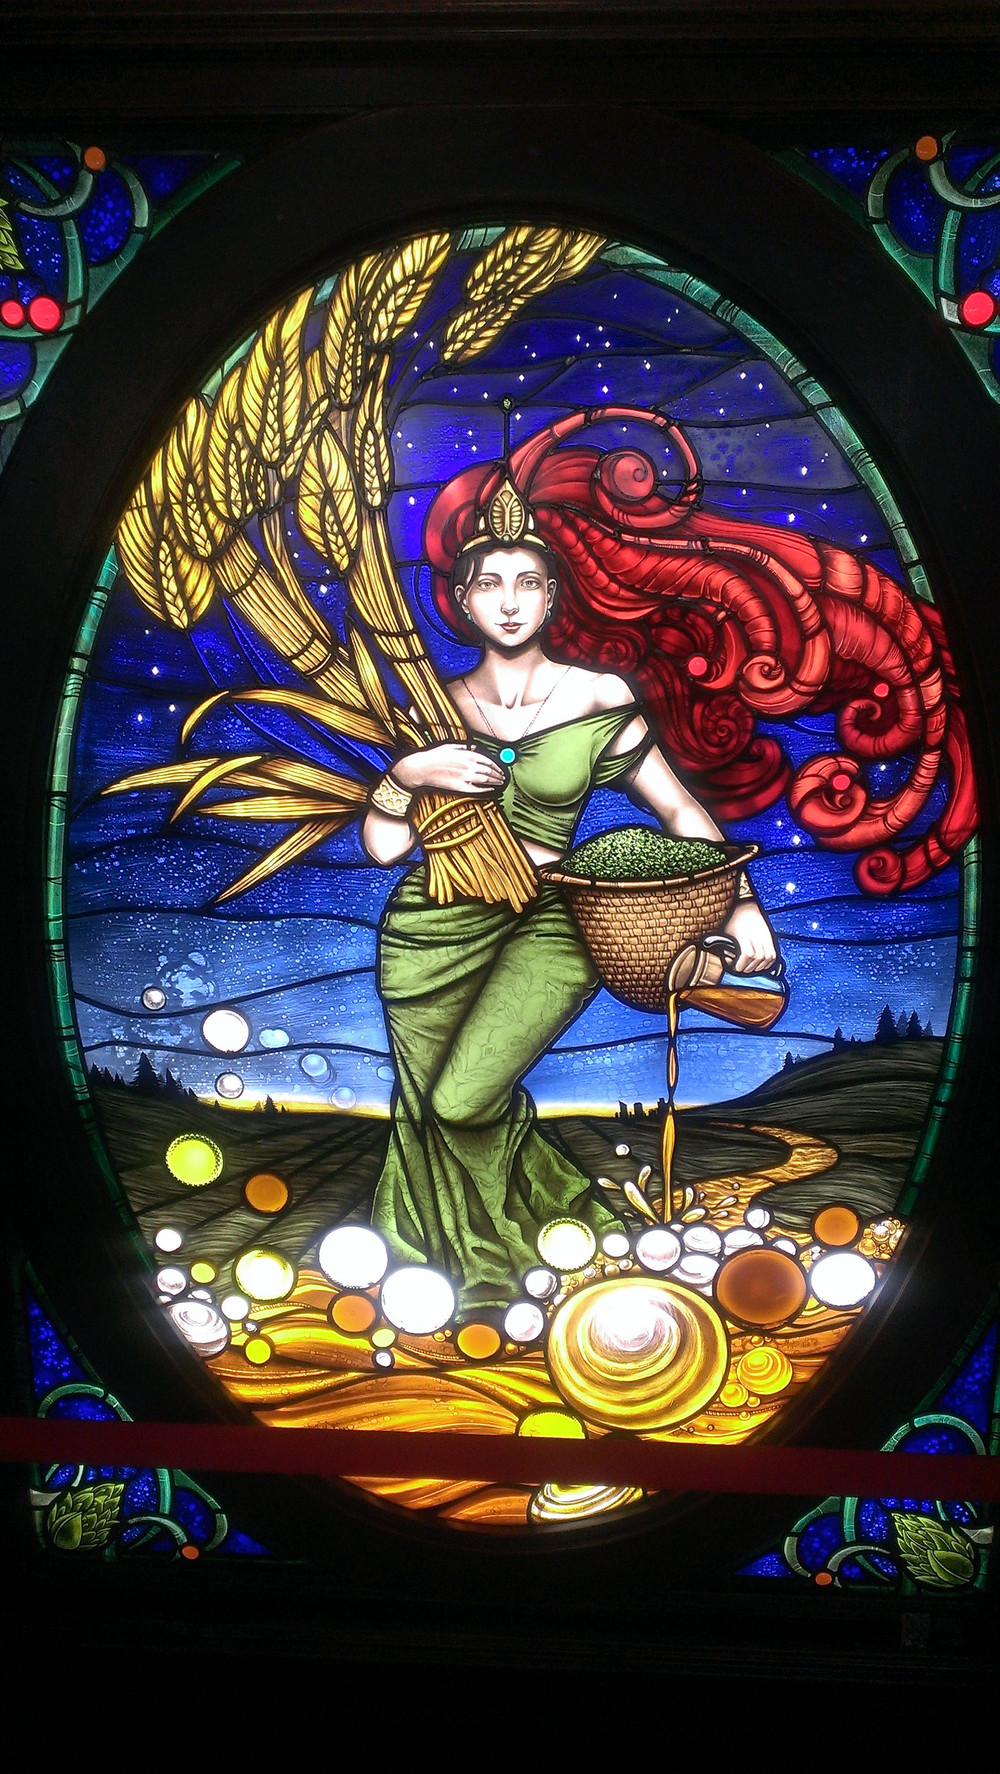 A depiction of the goddess Ninkasi in stained glass at Founders Brewing. Source: Vedo